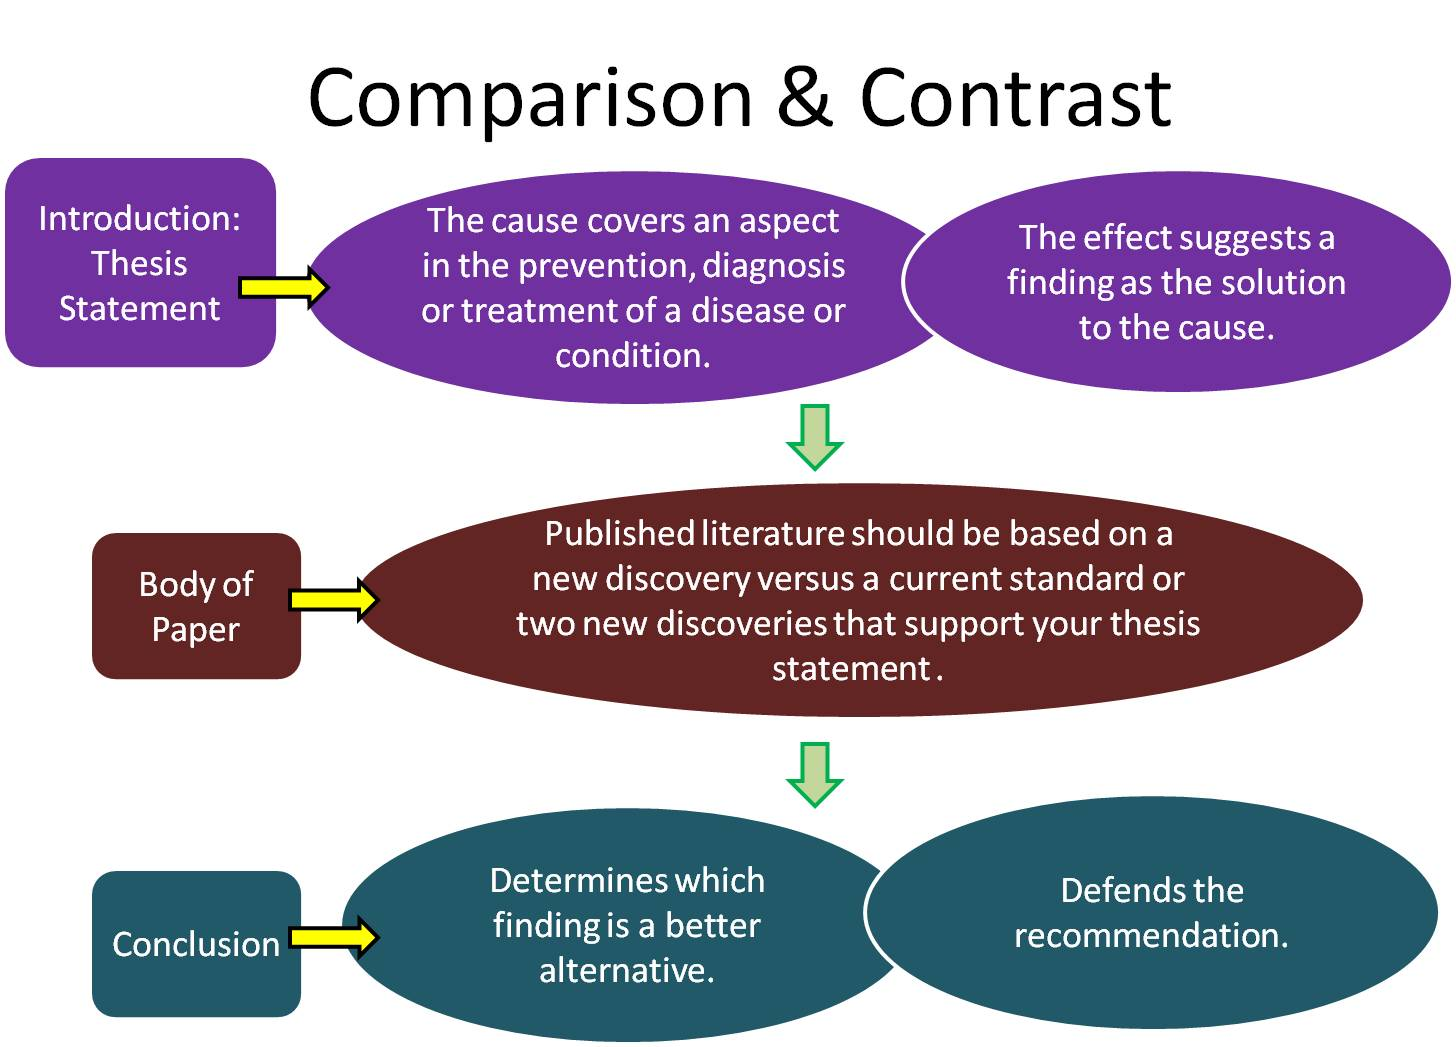 compare between highschool and university example of research paper topic